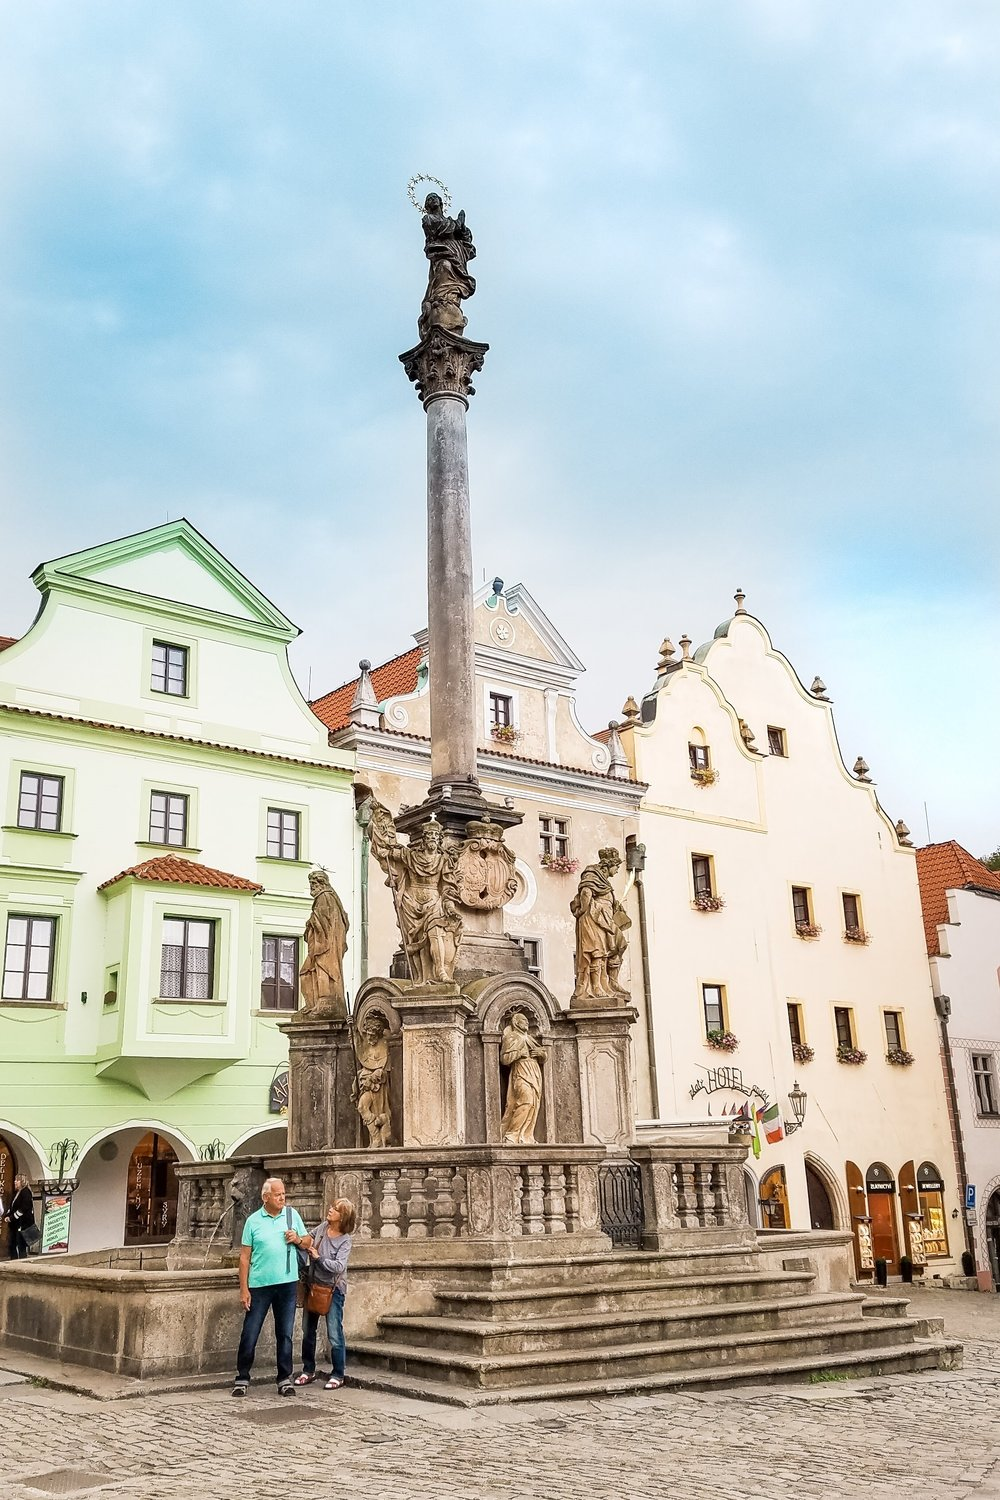 The Plague Column sits in the middle of Cesky Krumlov's town square, surrounded by pastel buildings, hotels and restaurants.